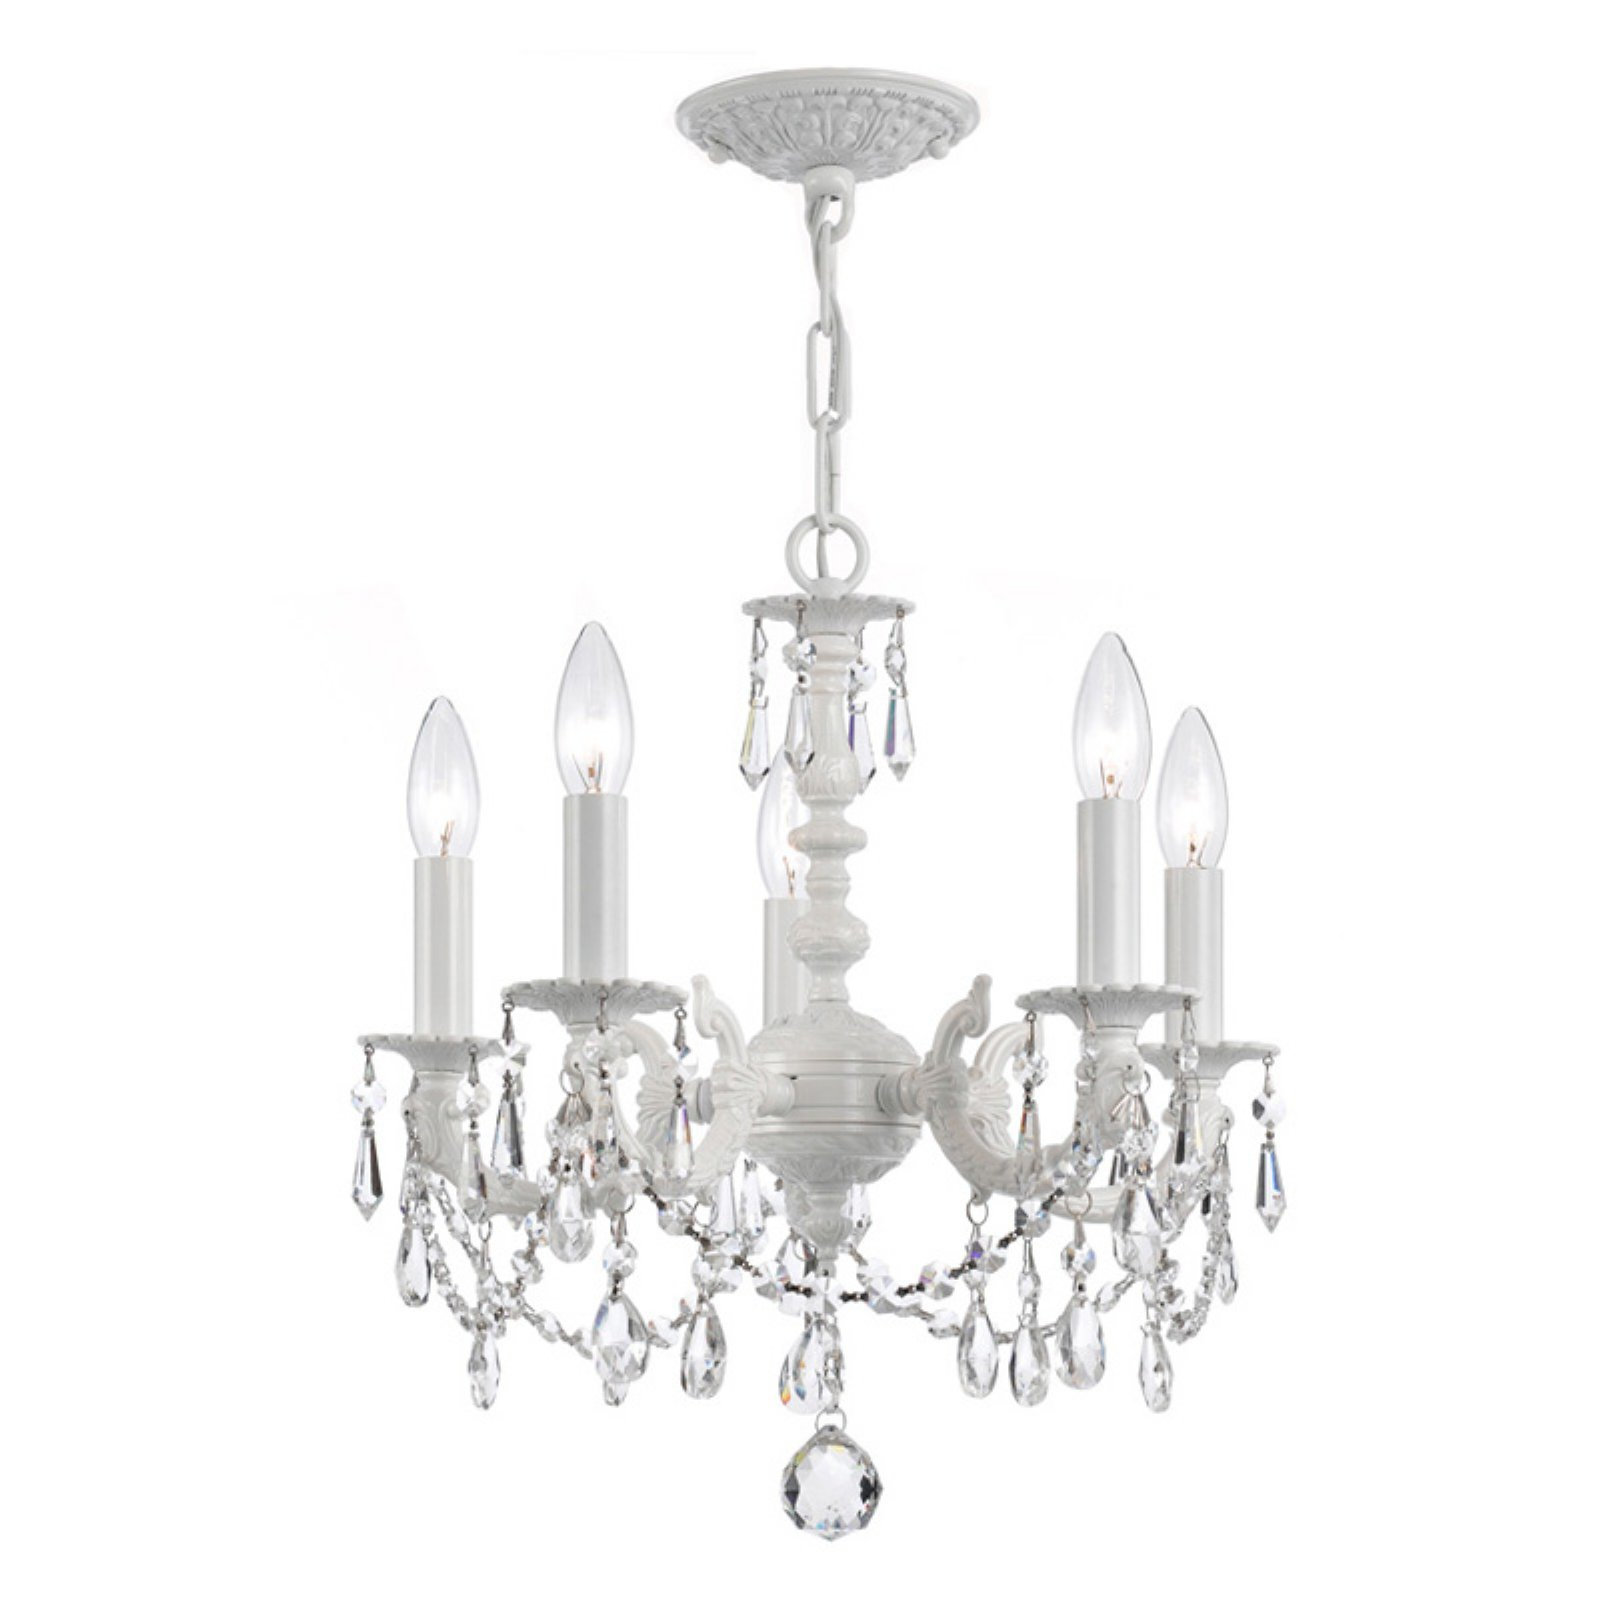 Popular Blanchette 5 Light Candle Style Chandeliers Pertaining To Crystorama Paris Market 5515 Ww Cl Mwp 5 Light Chandelier (View 14 of 20)